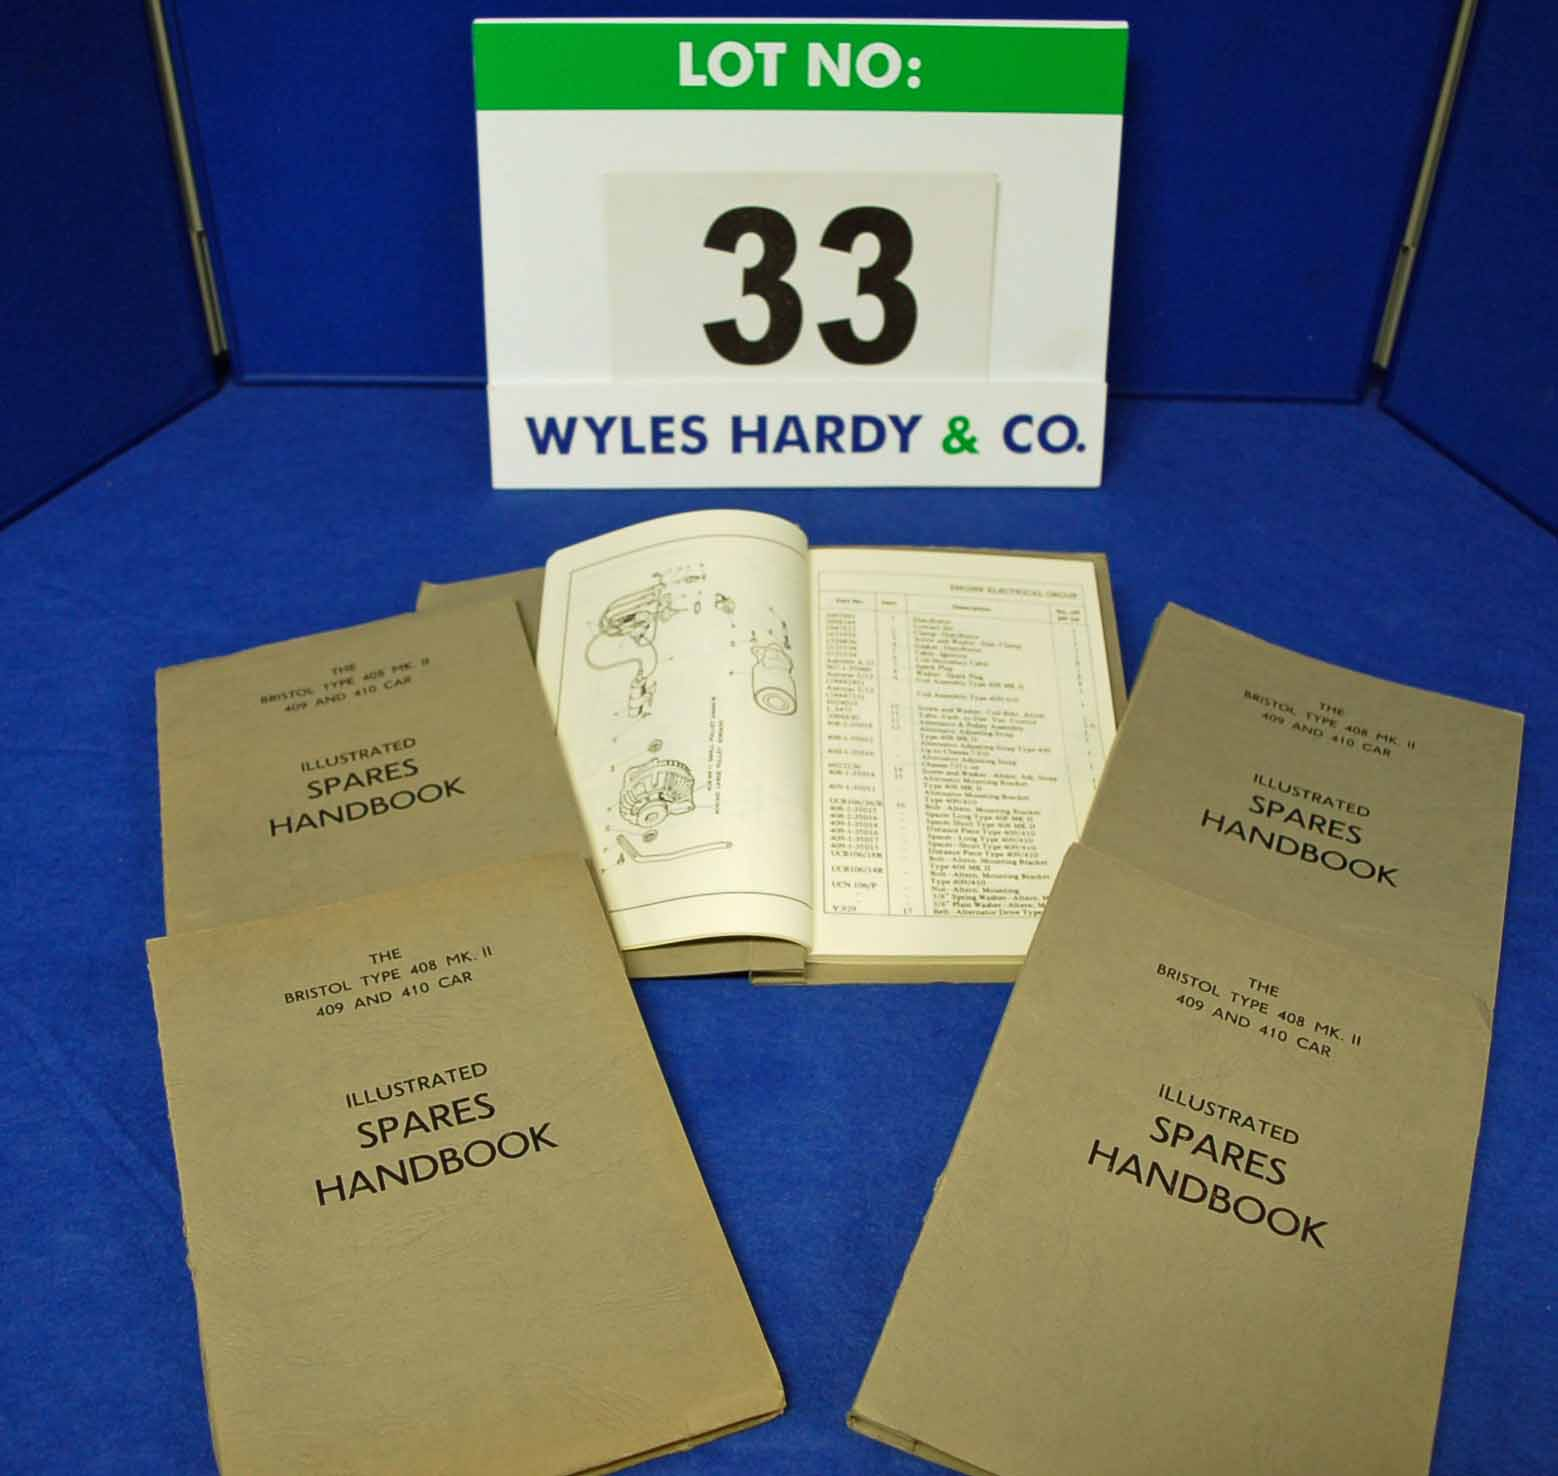 Five Copies of the Spares Handbook for The Bristol Type 408 Mk II, 409 and 410 Car